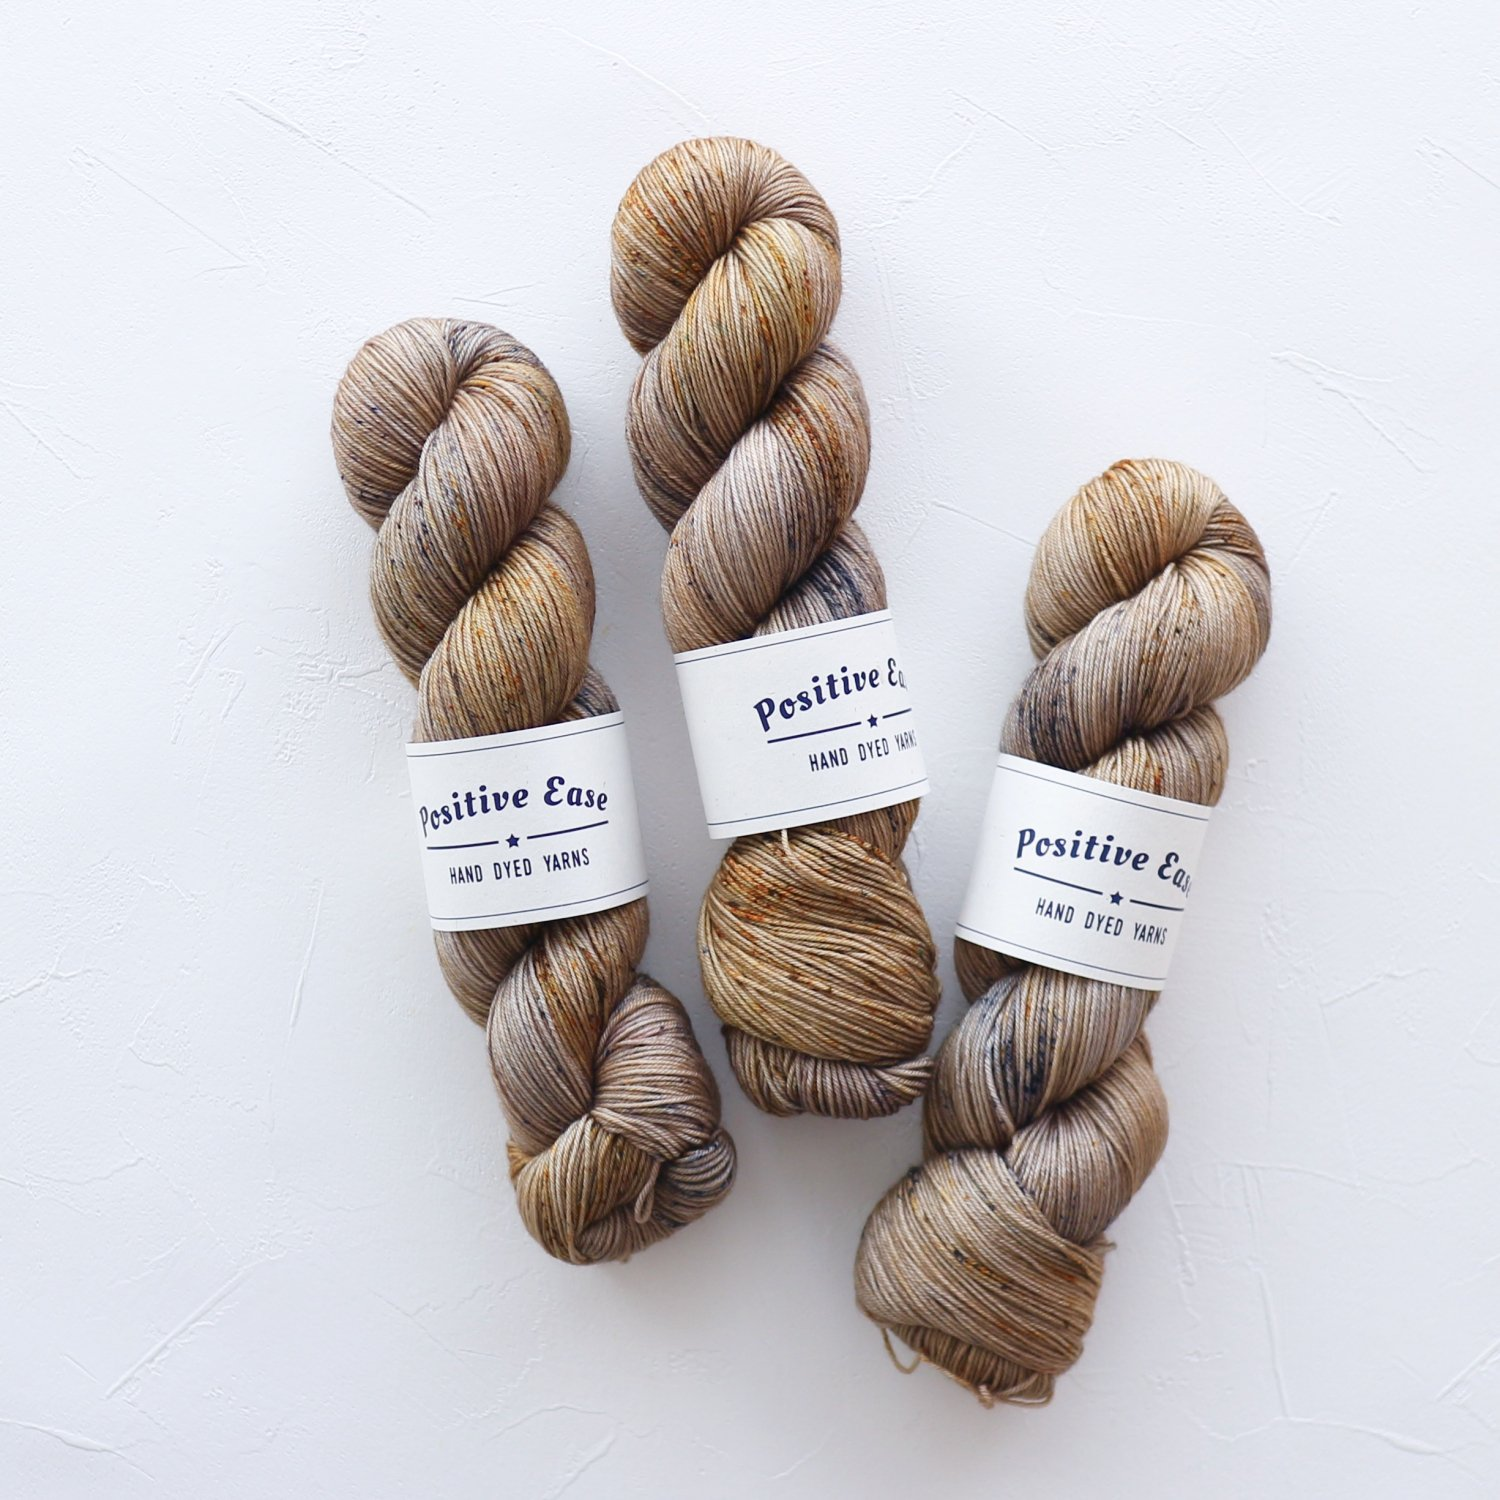 【Positive Ease】<br>Pure Merino<br>Patina